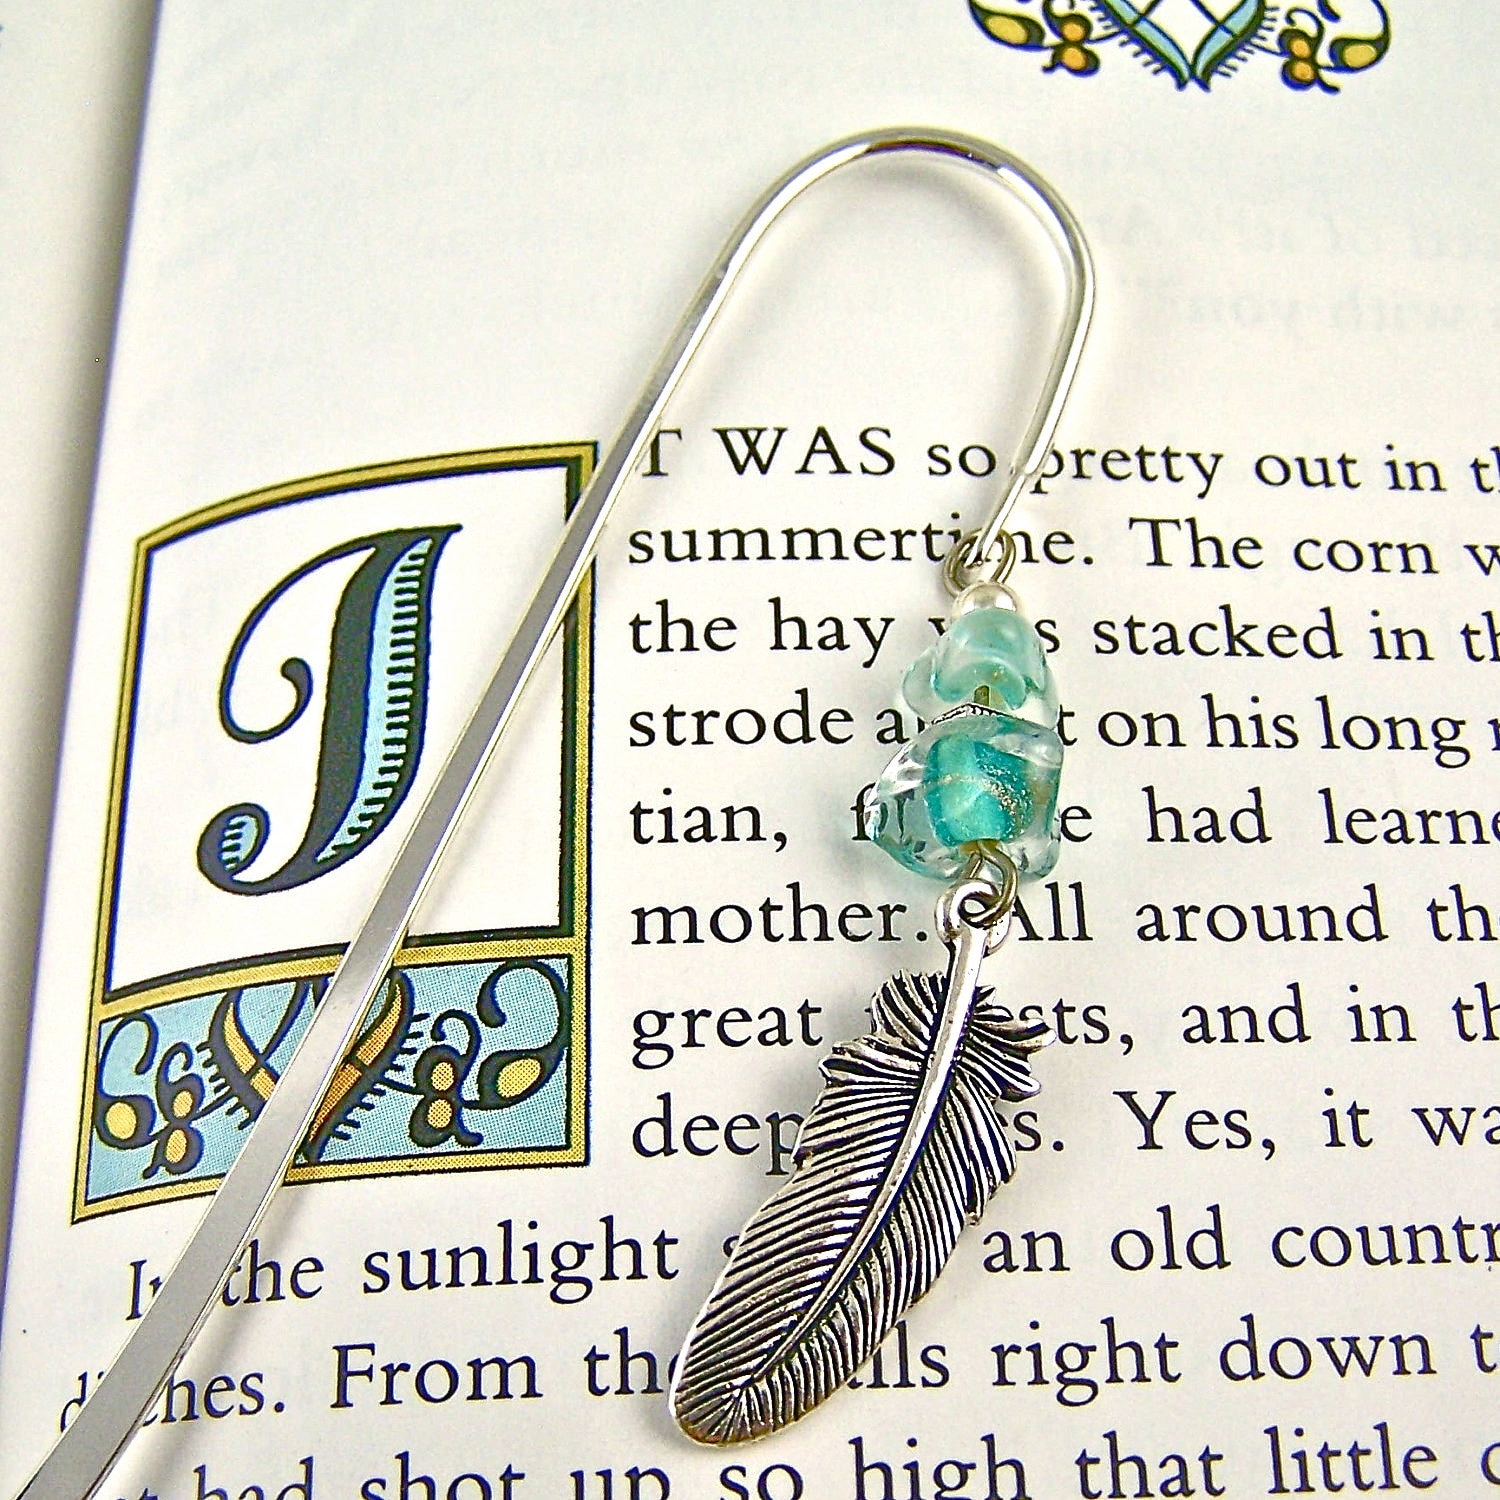 Feather Bookmark - Silver Plated Pewter Charm with Verdigris Green Turquoise Sea Glass Beads / Silver Shepherd Hook Page Marker